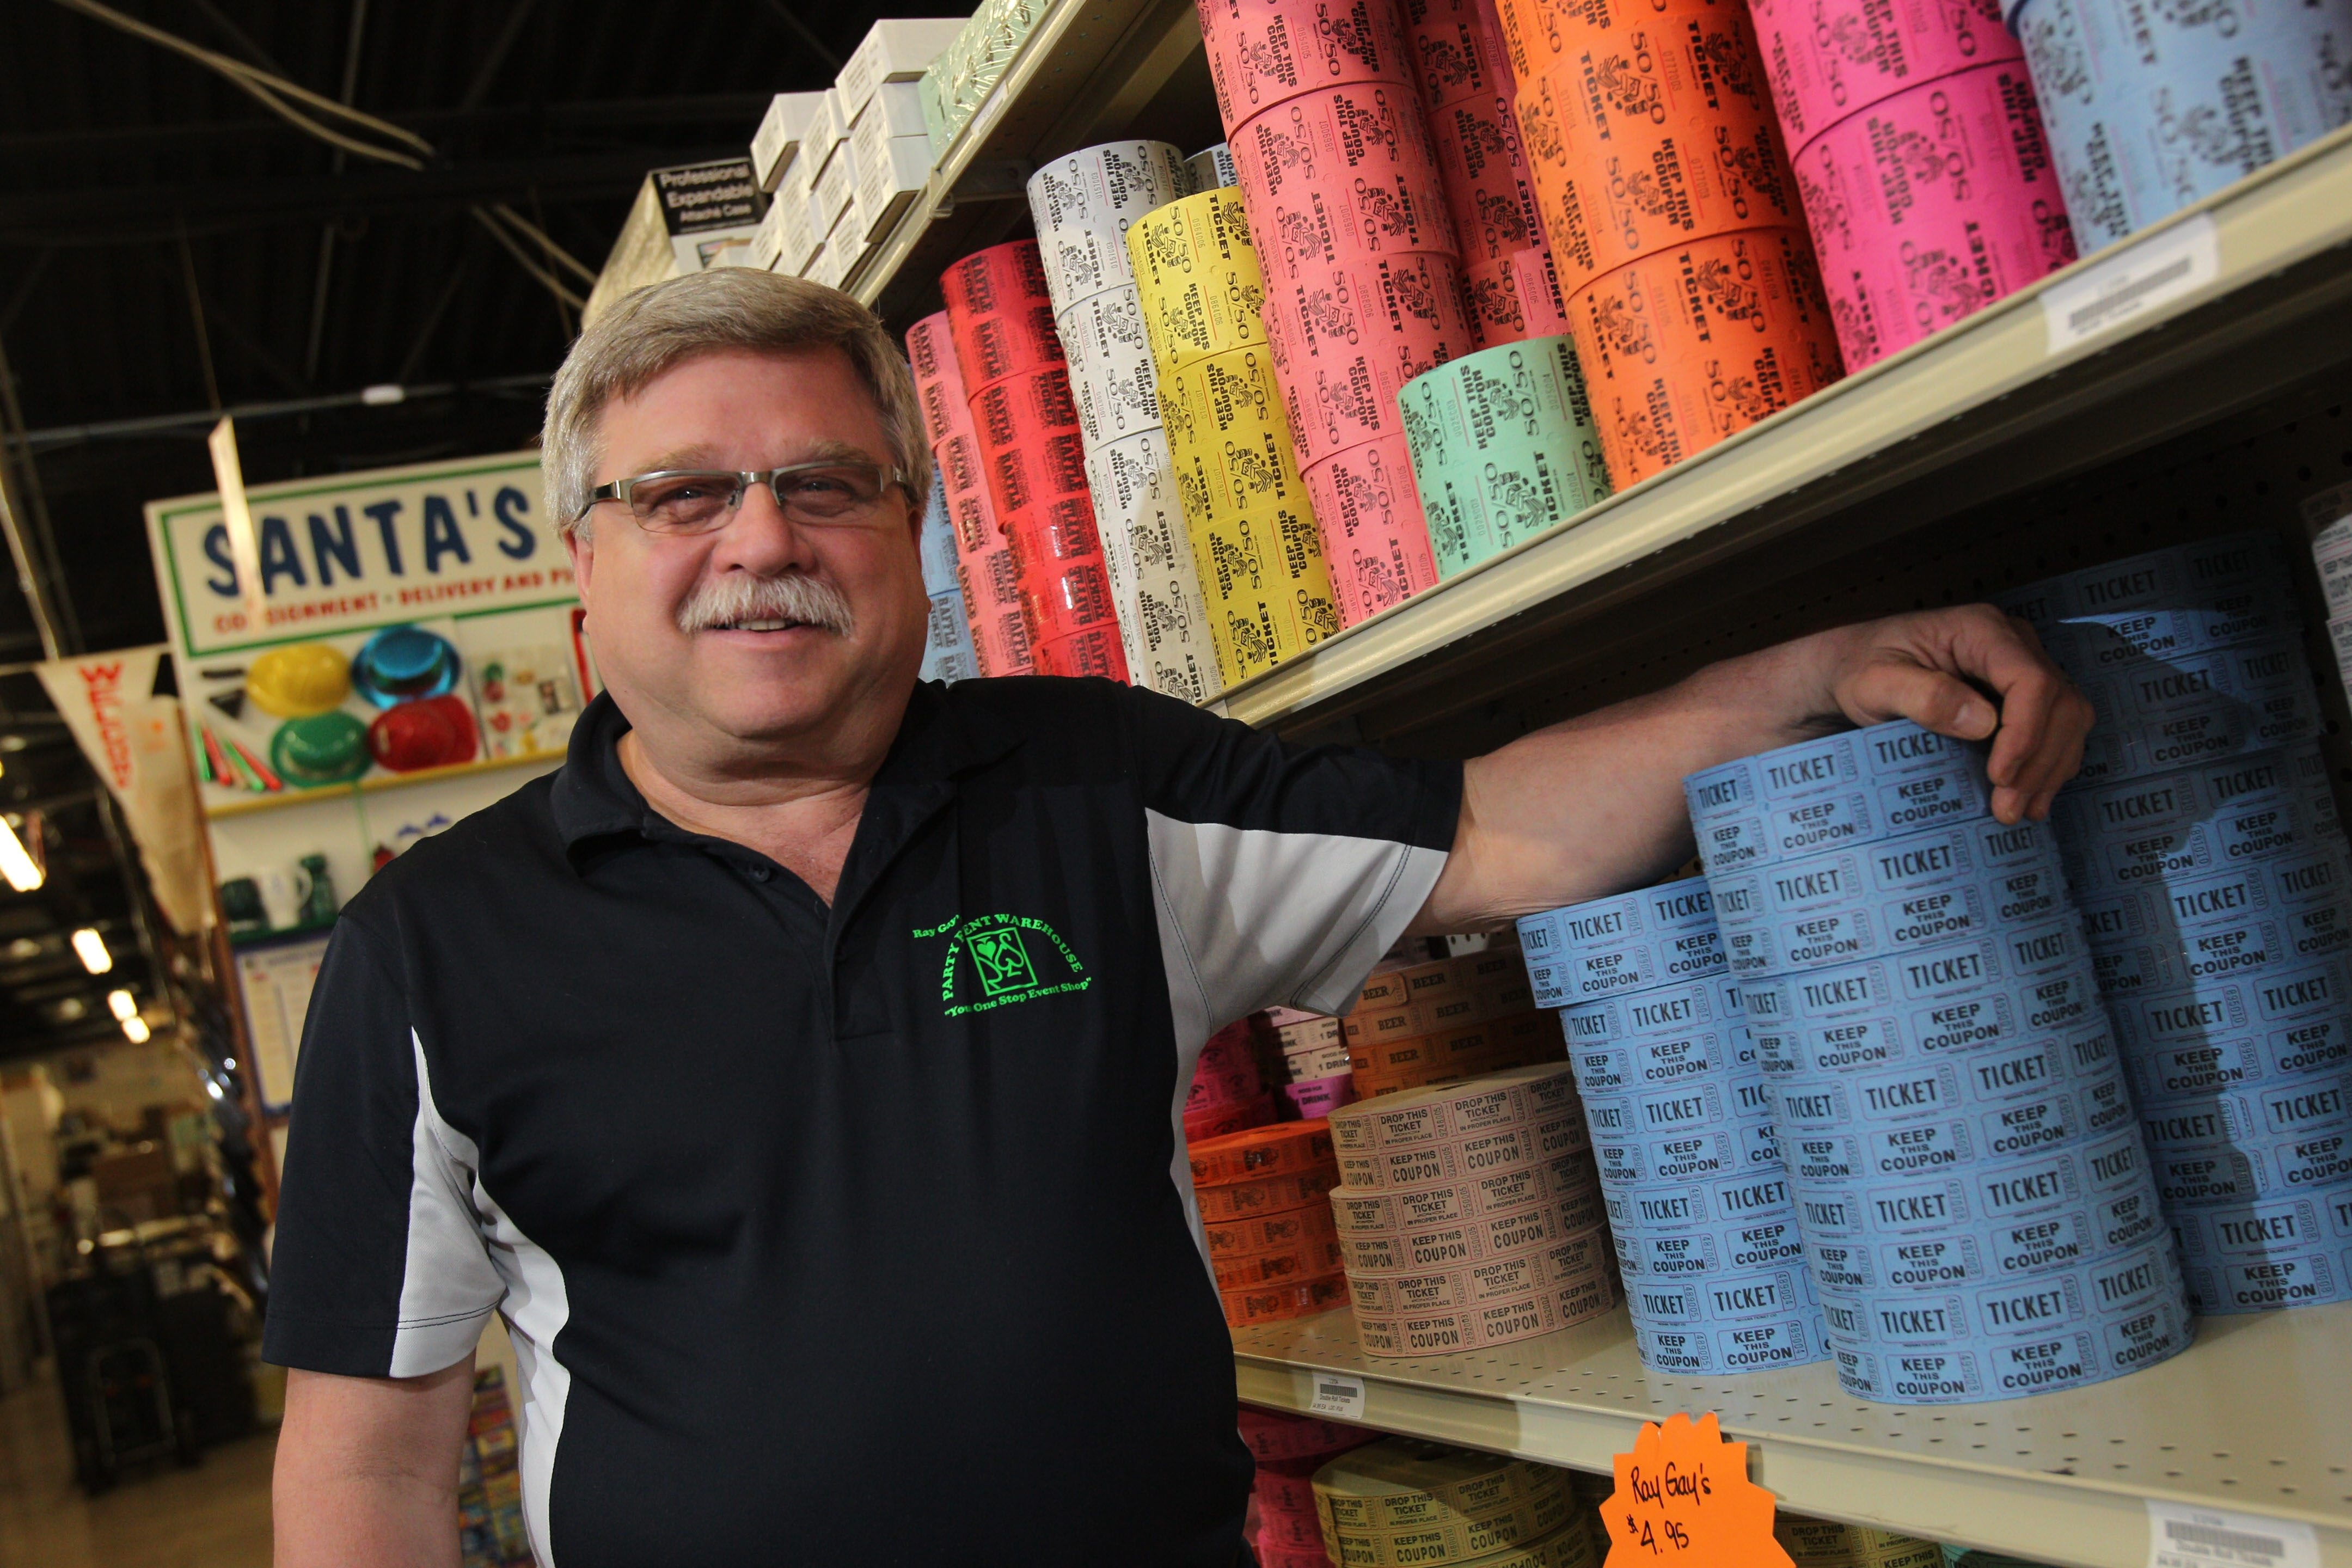 Ray Gay Sales in Cheektowaga supplies equipment and materials for fundraising events. Owner Chuck Gajewski stands near a shelf with thousands of fundraiser tickets.